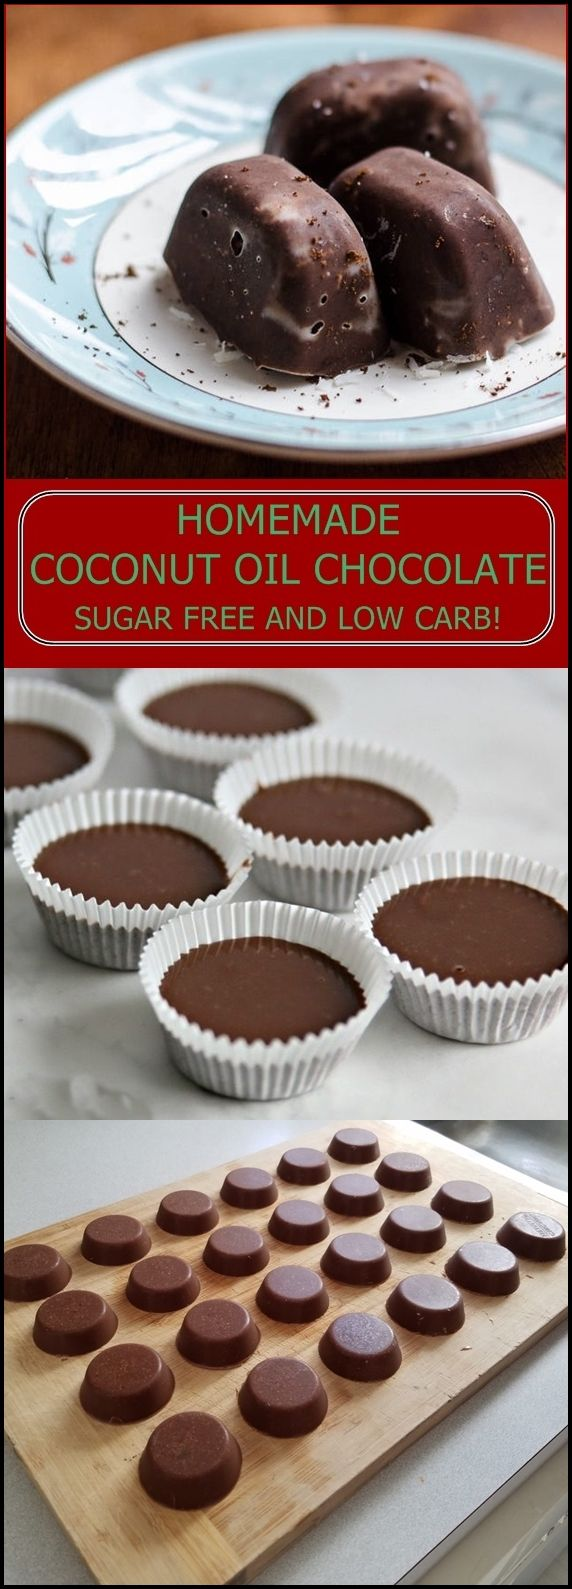 Imagine that you're on the low-carb diet and still you eat chocolate. Well, it is not imagination! It is possible with homemade sugar-free chocolate. We found an amazing recipe with coconut oil and cocoa. Of course, instead of sugar, we use Splenda. Try out the recipe and enjoy the most loved dessert. The recipe makes 10 servings. Preparation time is 10 minutes, plus 30 minutes for refrigerating. Nutritional value (total): 700 Calories, 73 g Fat, 5 g Carbs, 5 g Protein.